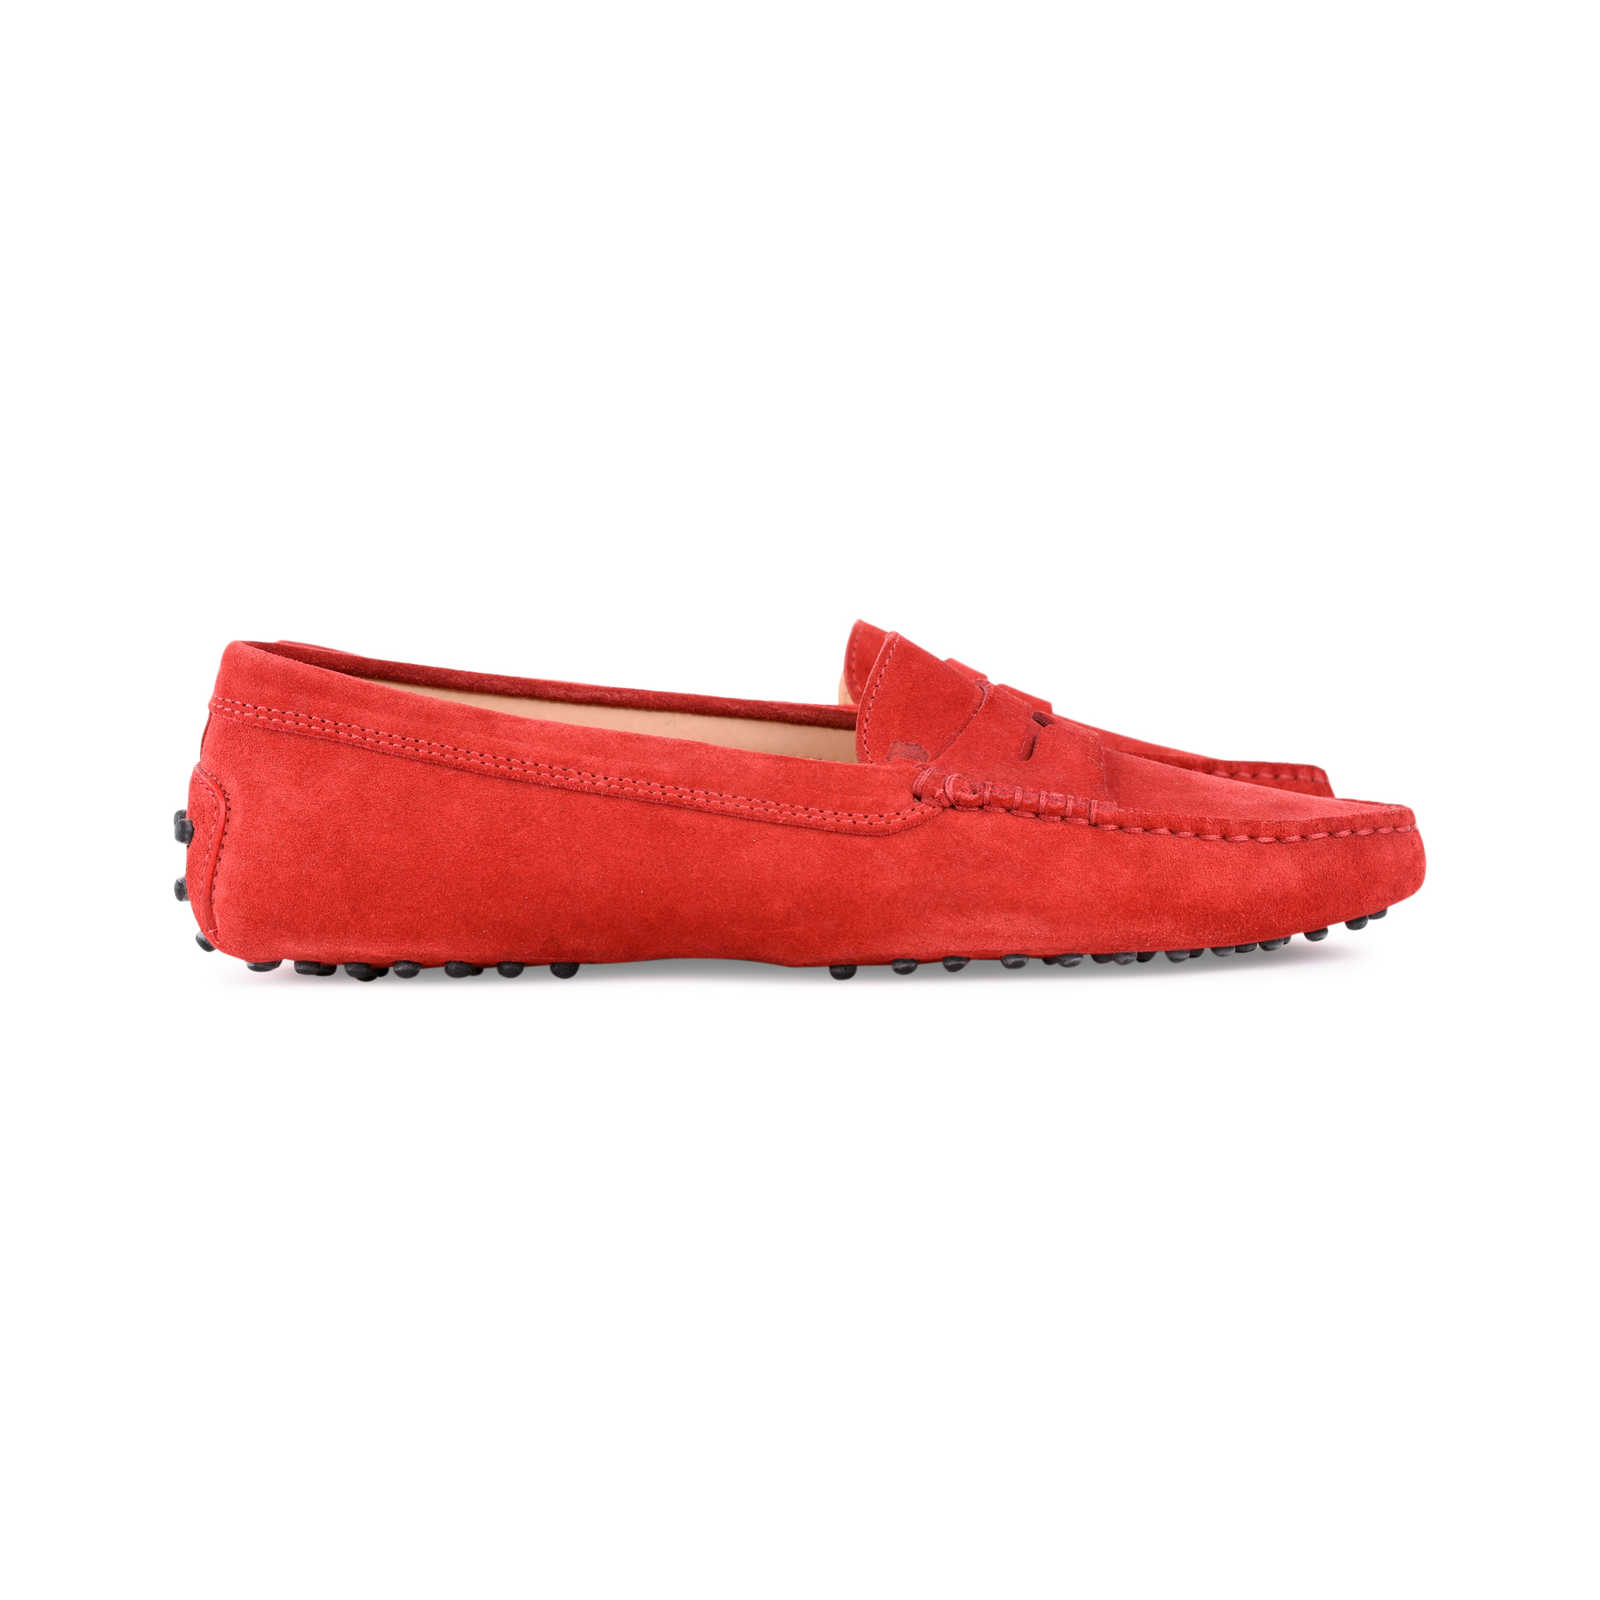 d9dfc4acbfe ... Authentic Second Hand Tod s Gommino Suede Loafers (PSS-469-00020) -  Thumbnail ...